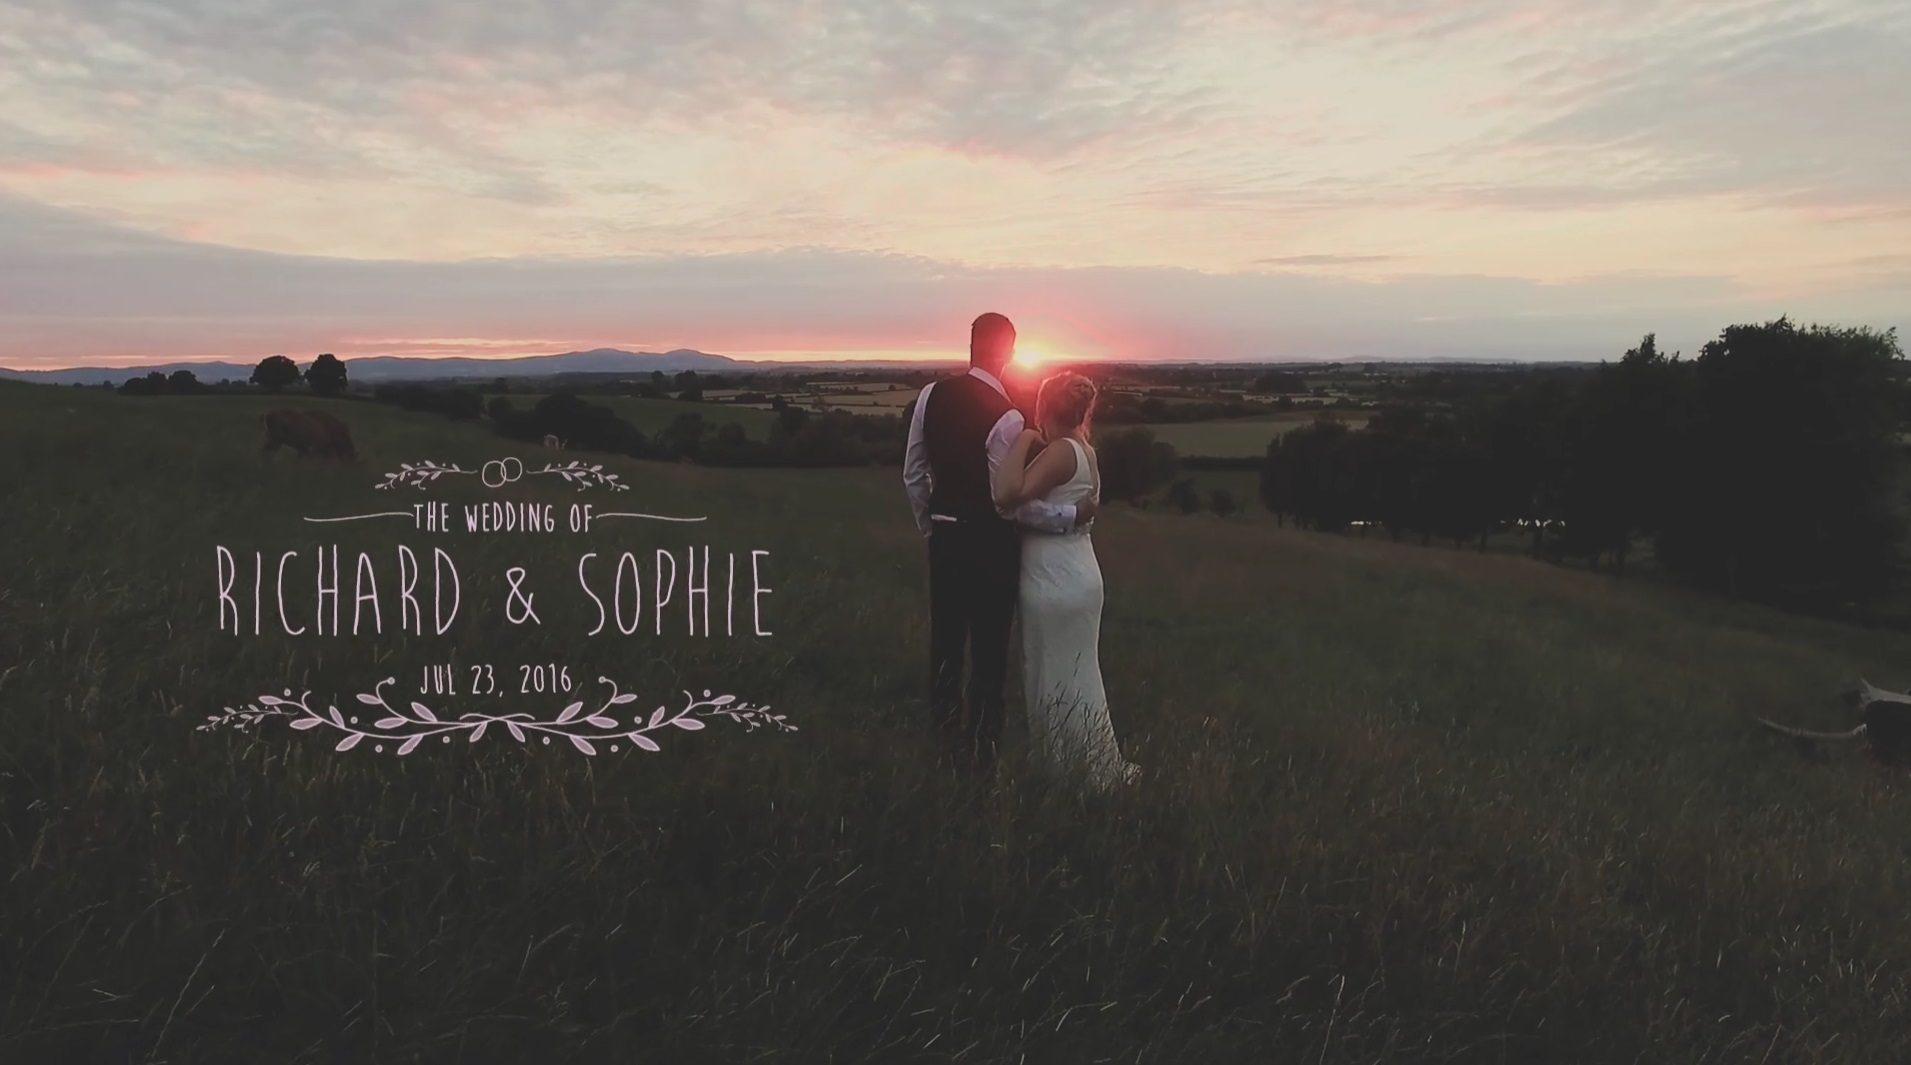 Worcestershire wedding video at Deer Park Hall, Pershore